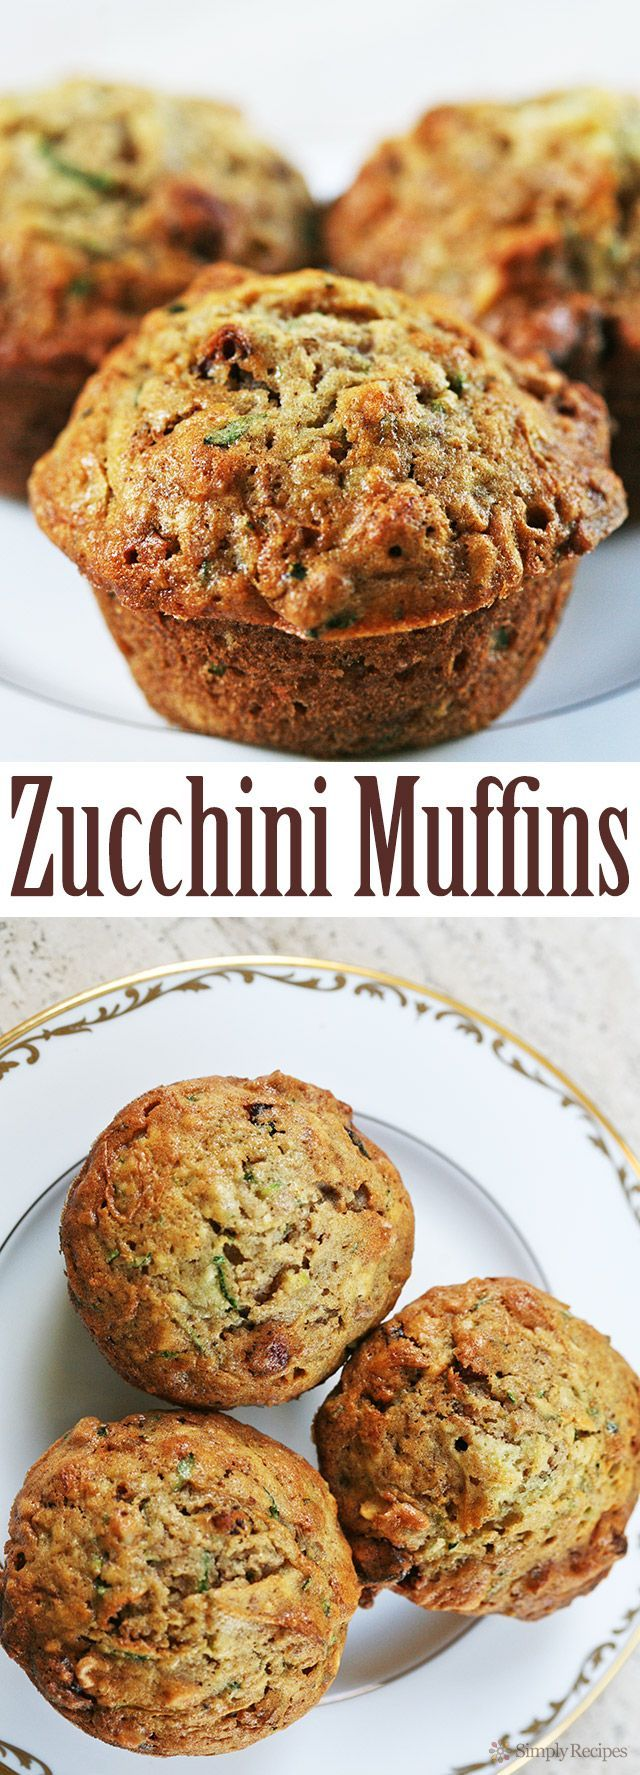 The BEST zucchini bread muffins EVER! Moist, sweet, packed with shredded zucchini, walnuts, dried cranberries, and spiced with vanilla, cinnamon and nutmeg.